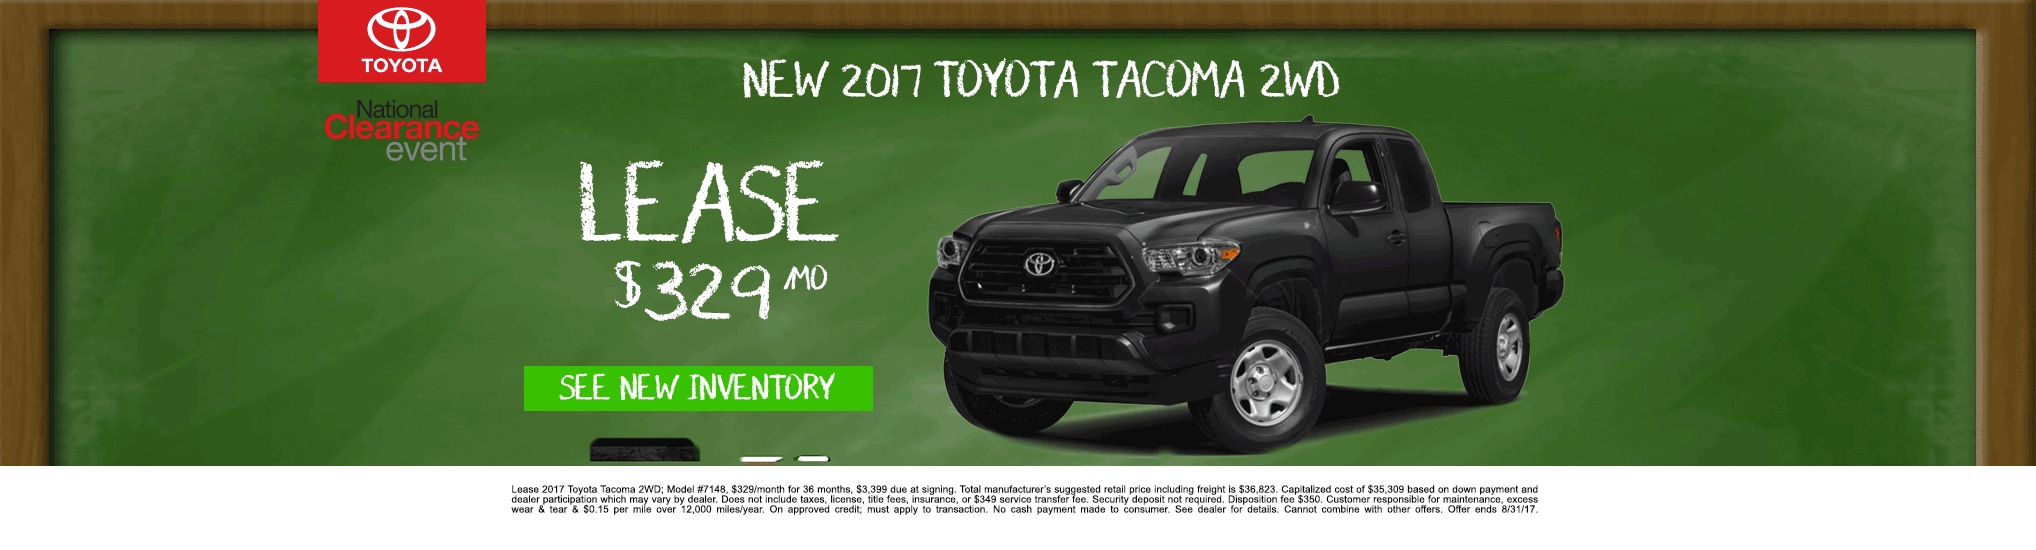 Toyota Tundra Lease Special